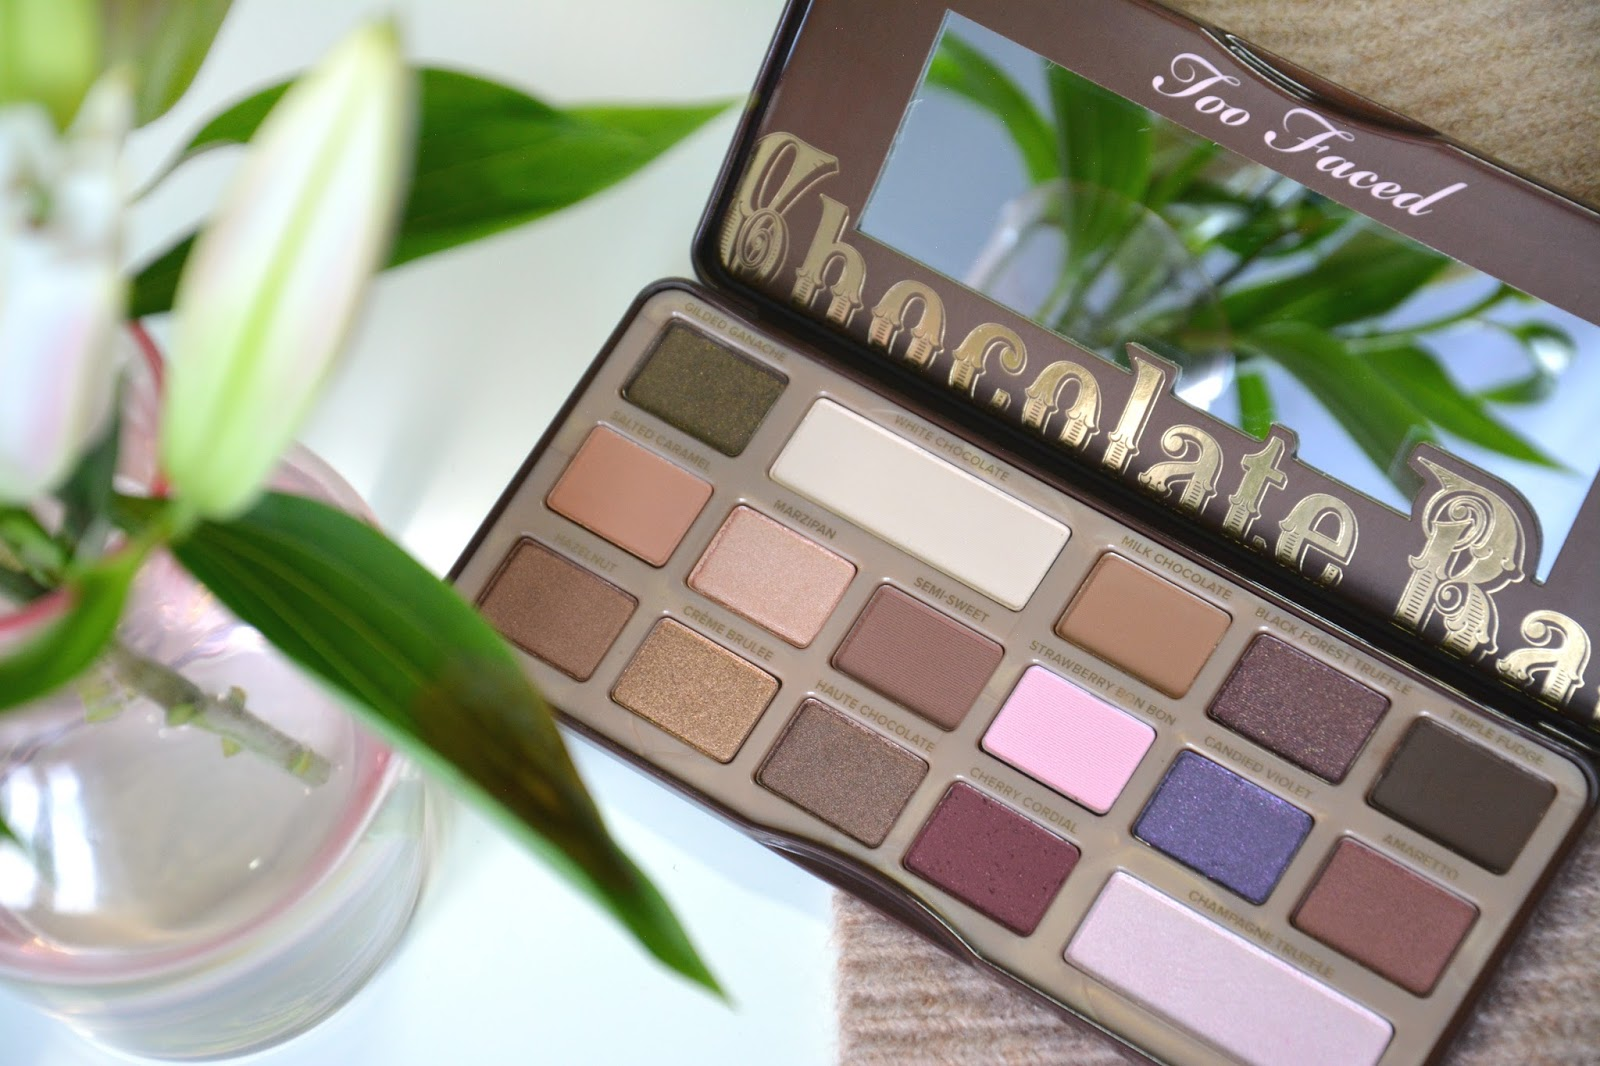 Too Faced The Chocolate Bar Eyeshadow Palette; Fresh Lilies